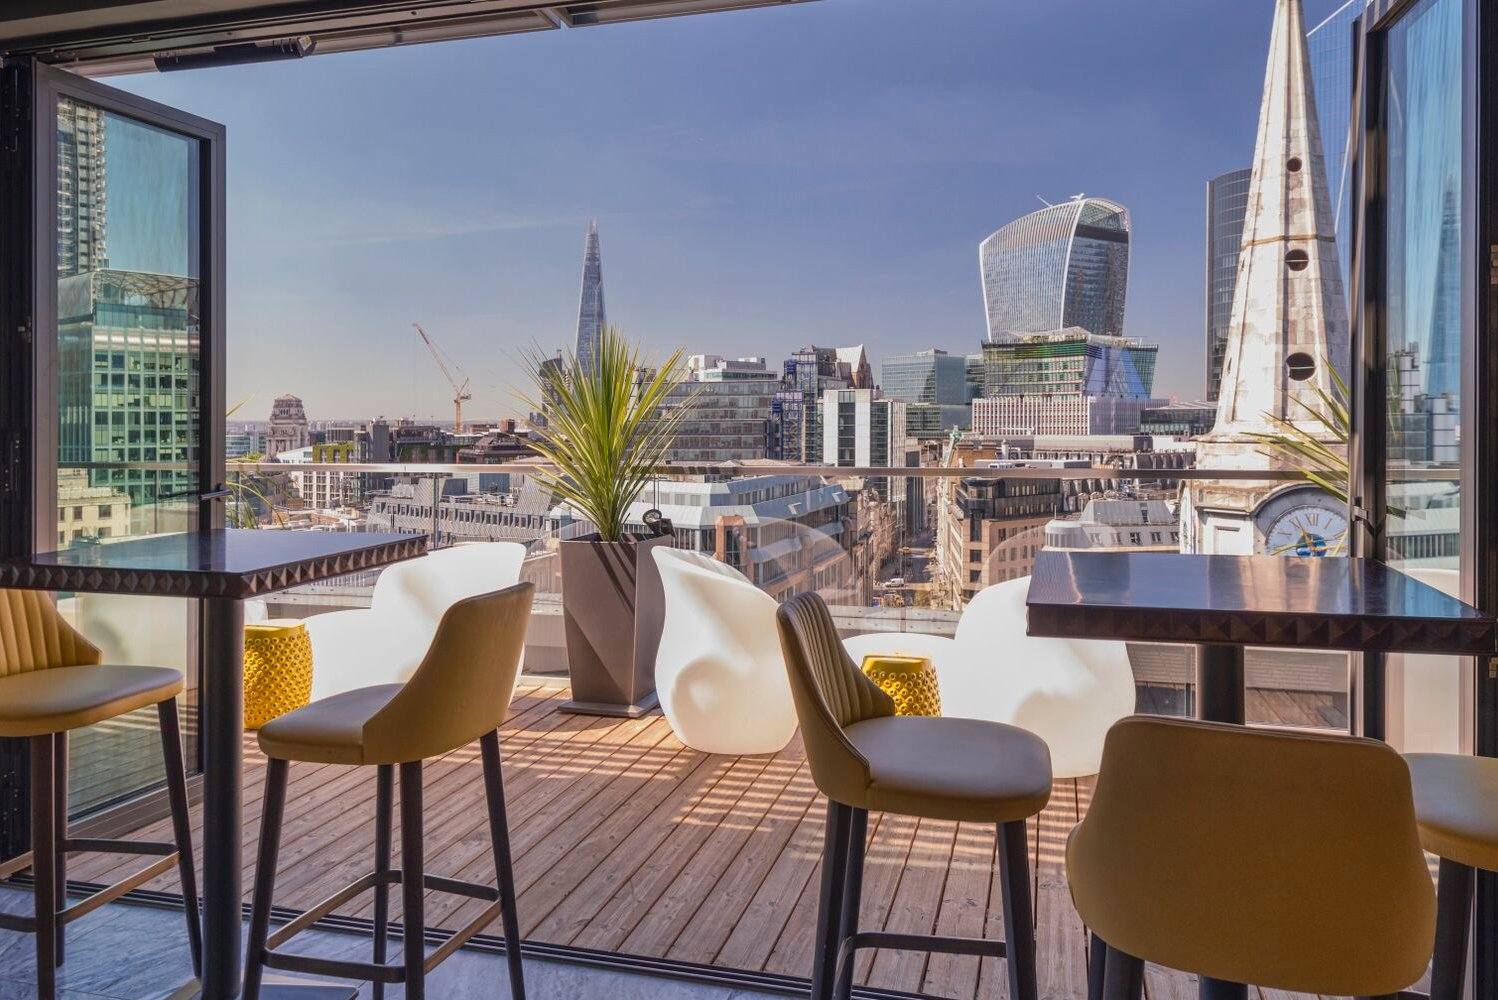 The streamlined design of the bar continues onto the deck, which has views of the city including Tower Bridge, The Shard and The Gherkin.